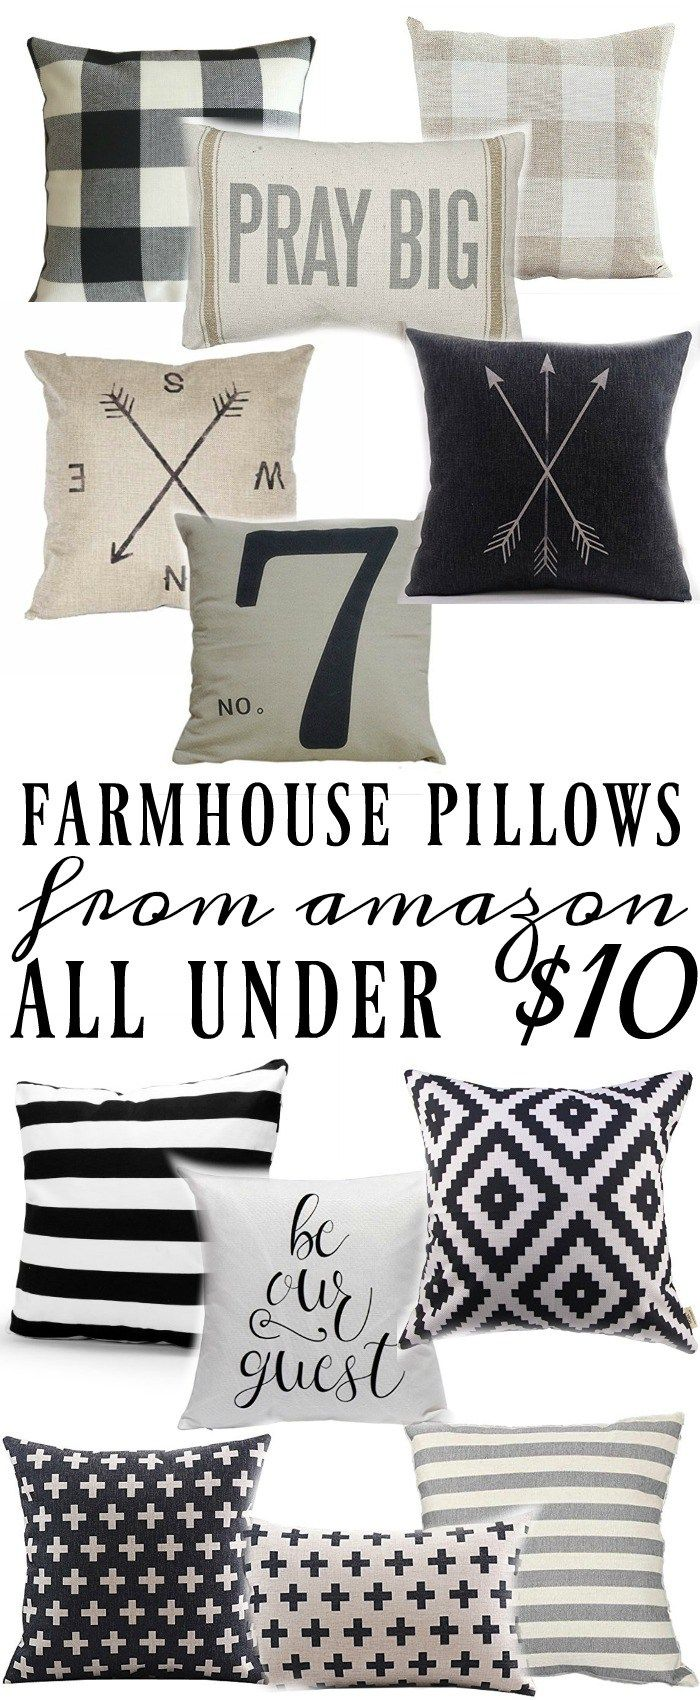 Cheap Decorative Pillows Under $10 Amazing Farmhouse Style Pillows All Under $10  Big Pillows Grey Stripes Decorating Design